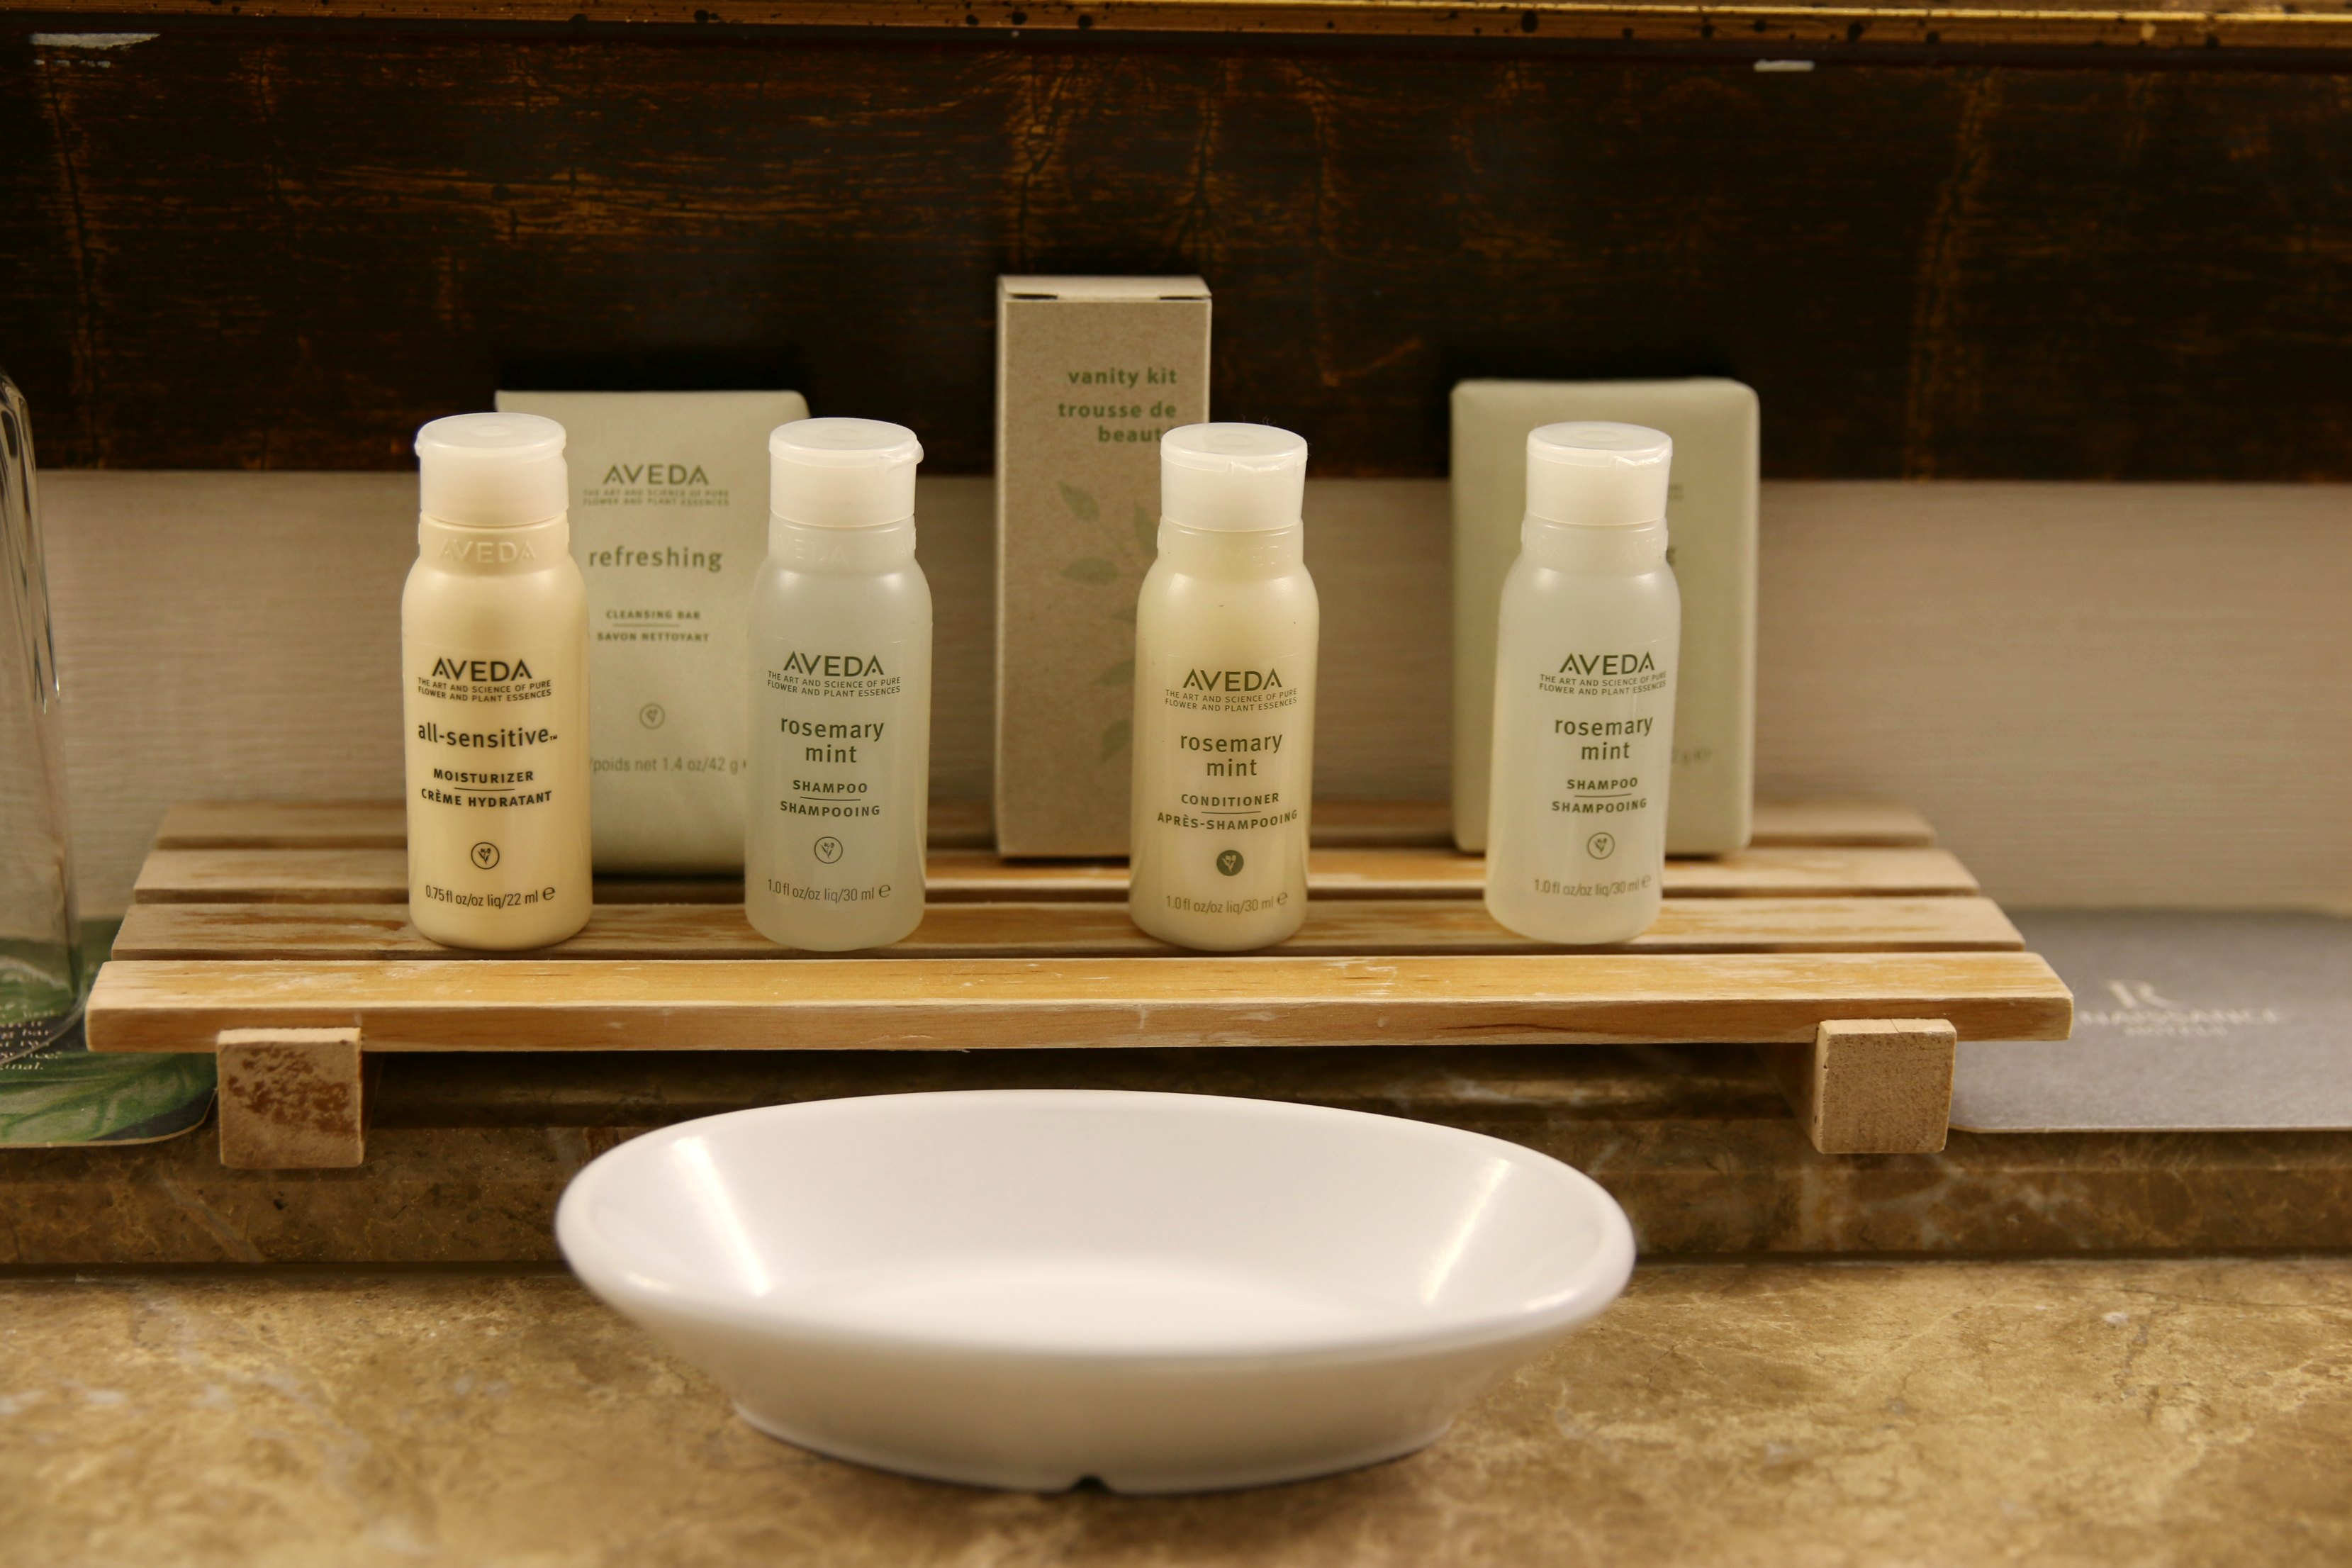 Aveda toiletries